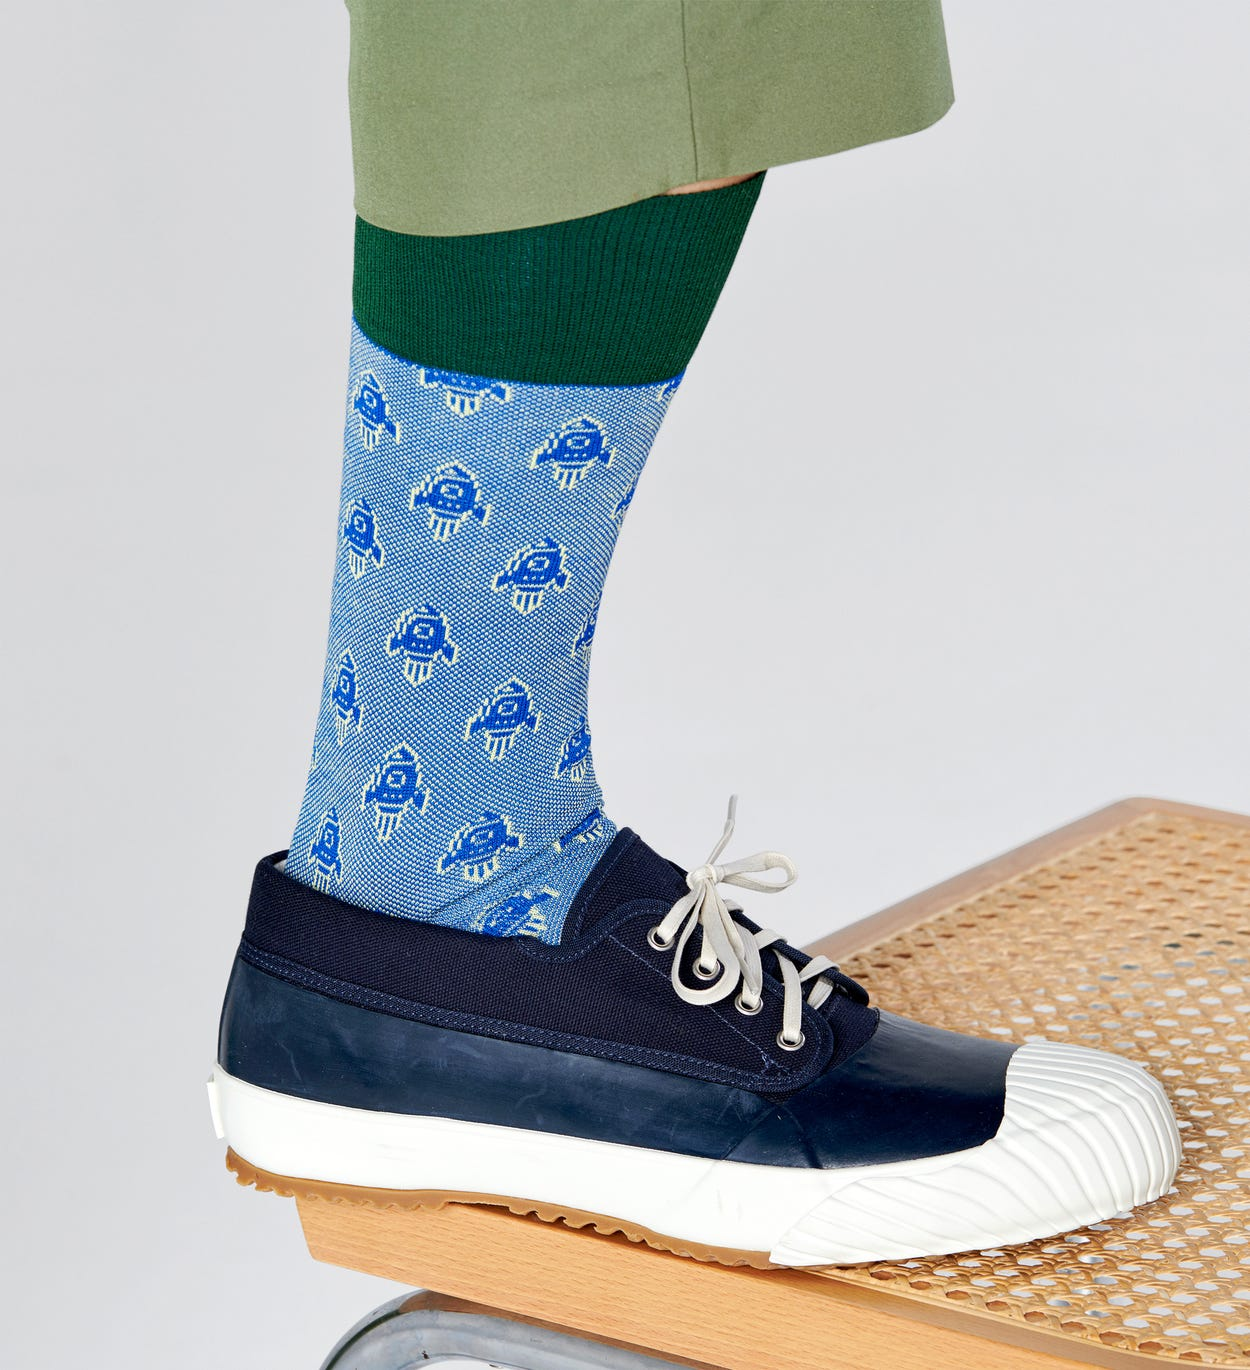 Dressed Rocket Sock